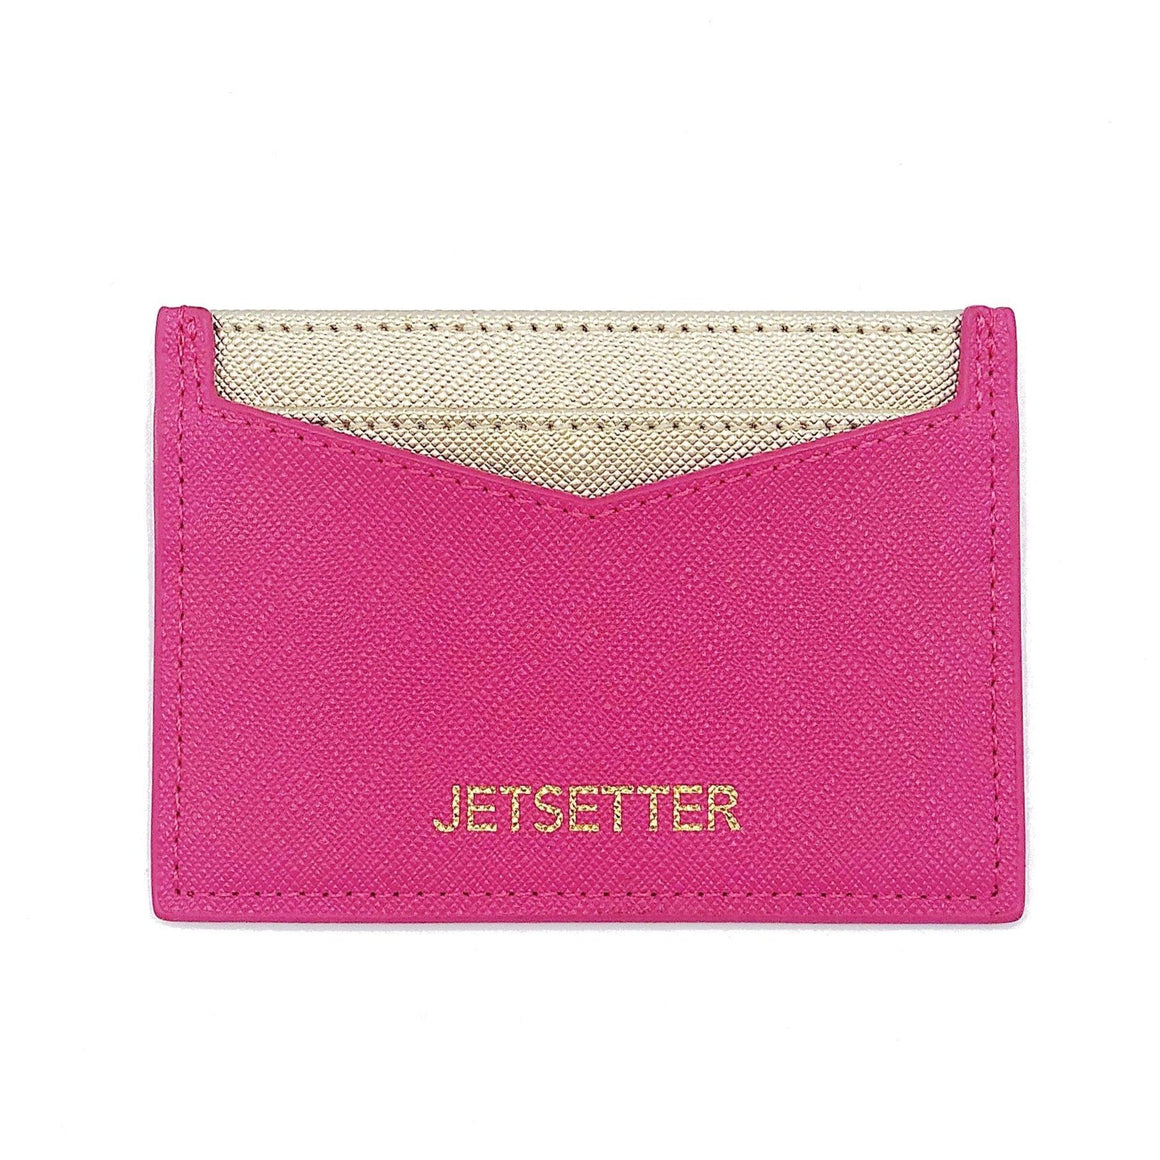 Jetsetter :: Credit Card Wallet